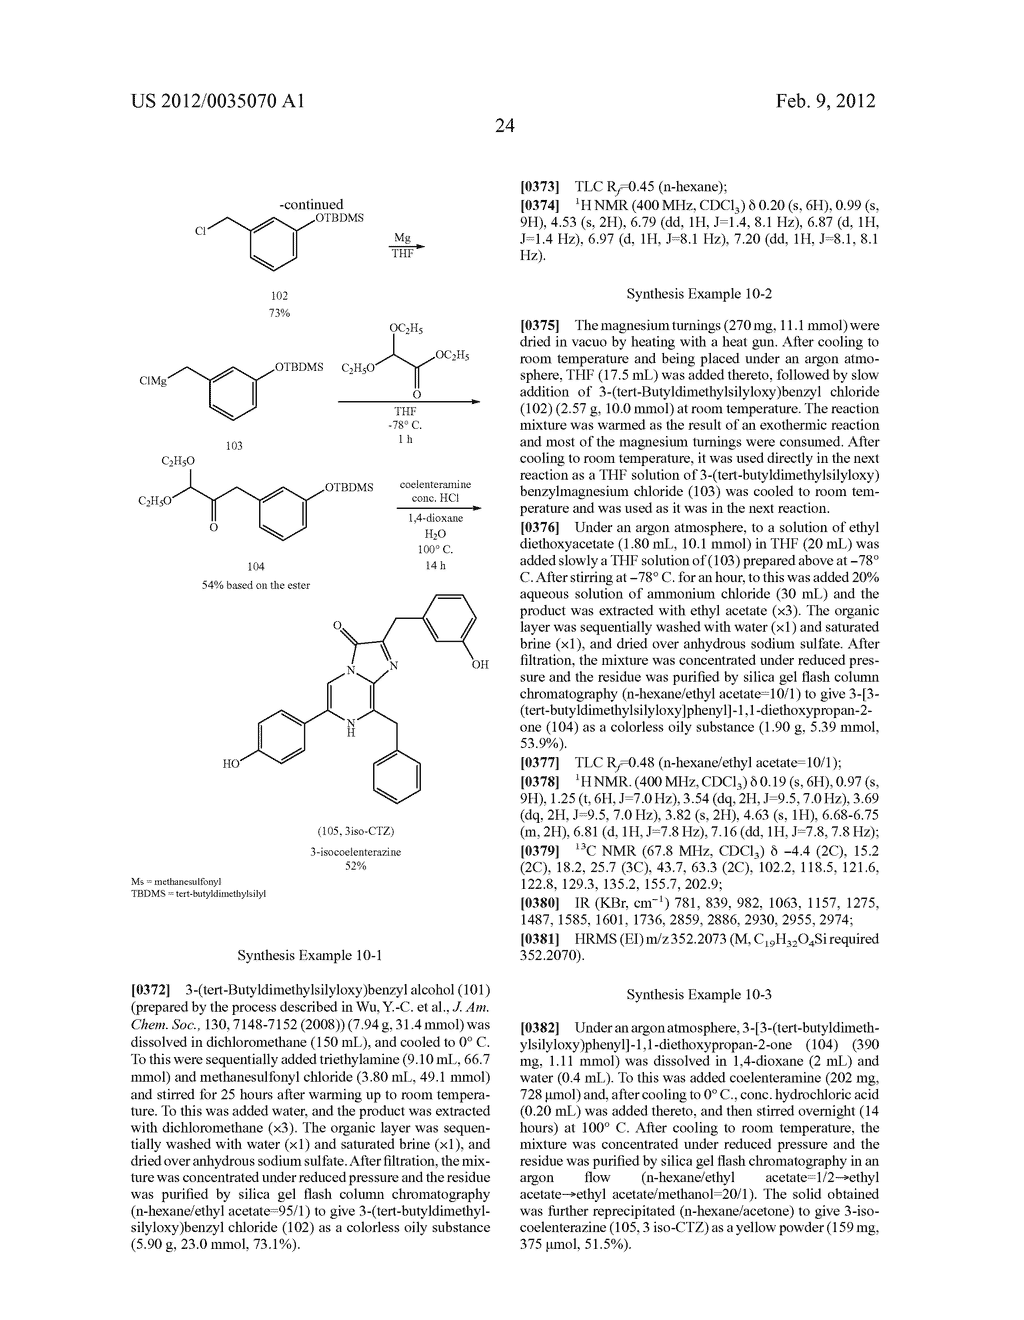 COELENTERAZINE ANALOGS AND MANUFACTURING METHOD THEREOF - diagram, schematic, and image 32